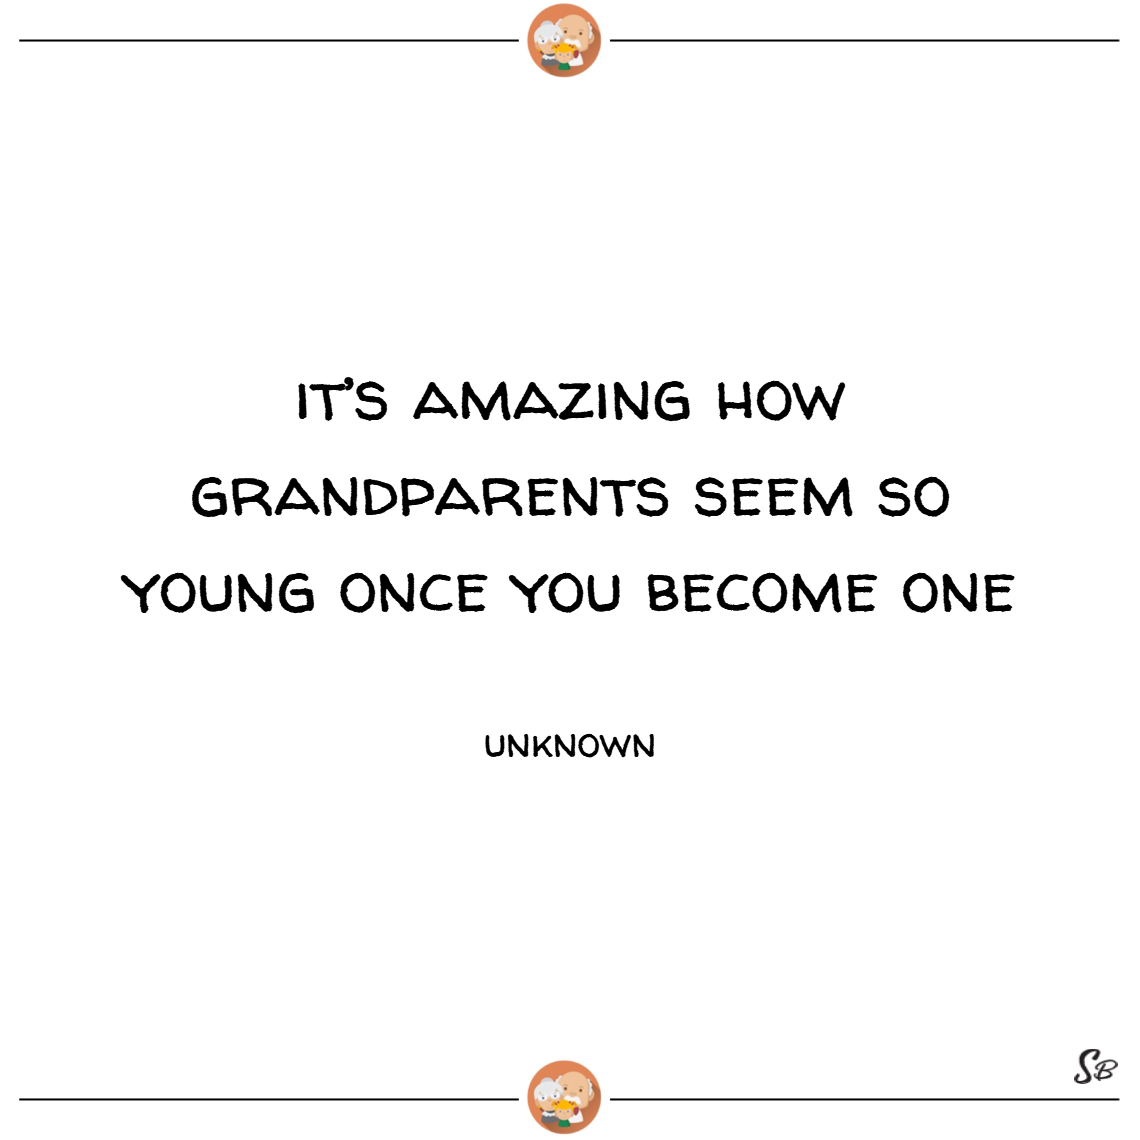 It's amazing how grandparents seem so young once you become one. – unknown